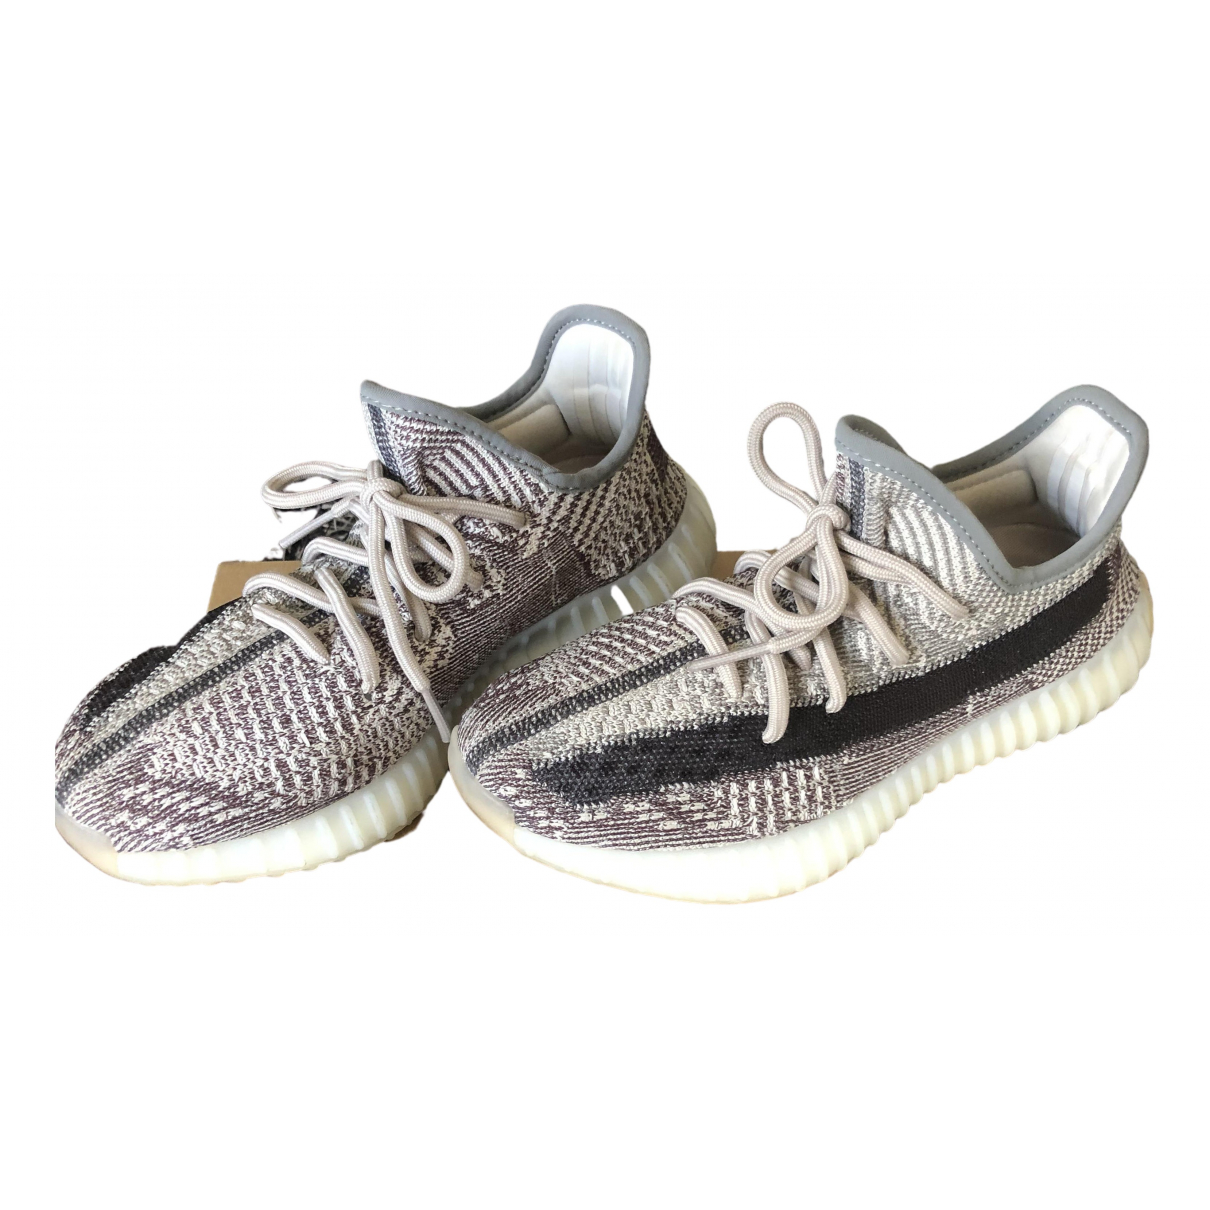 Yeezy X Adidas - Baskets Boost 350 V2 pour femme en toile - anthracite